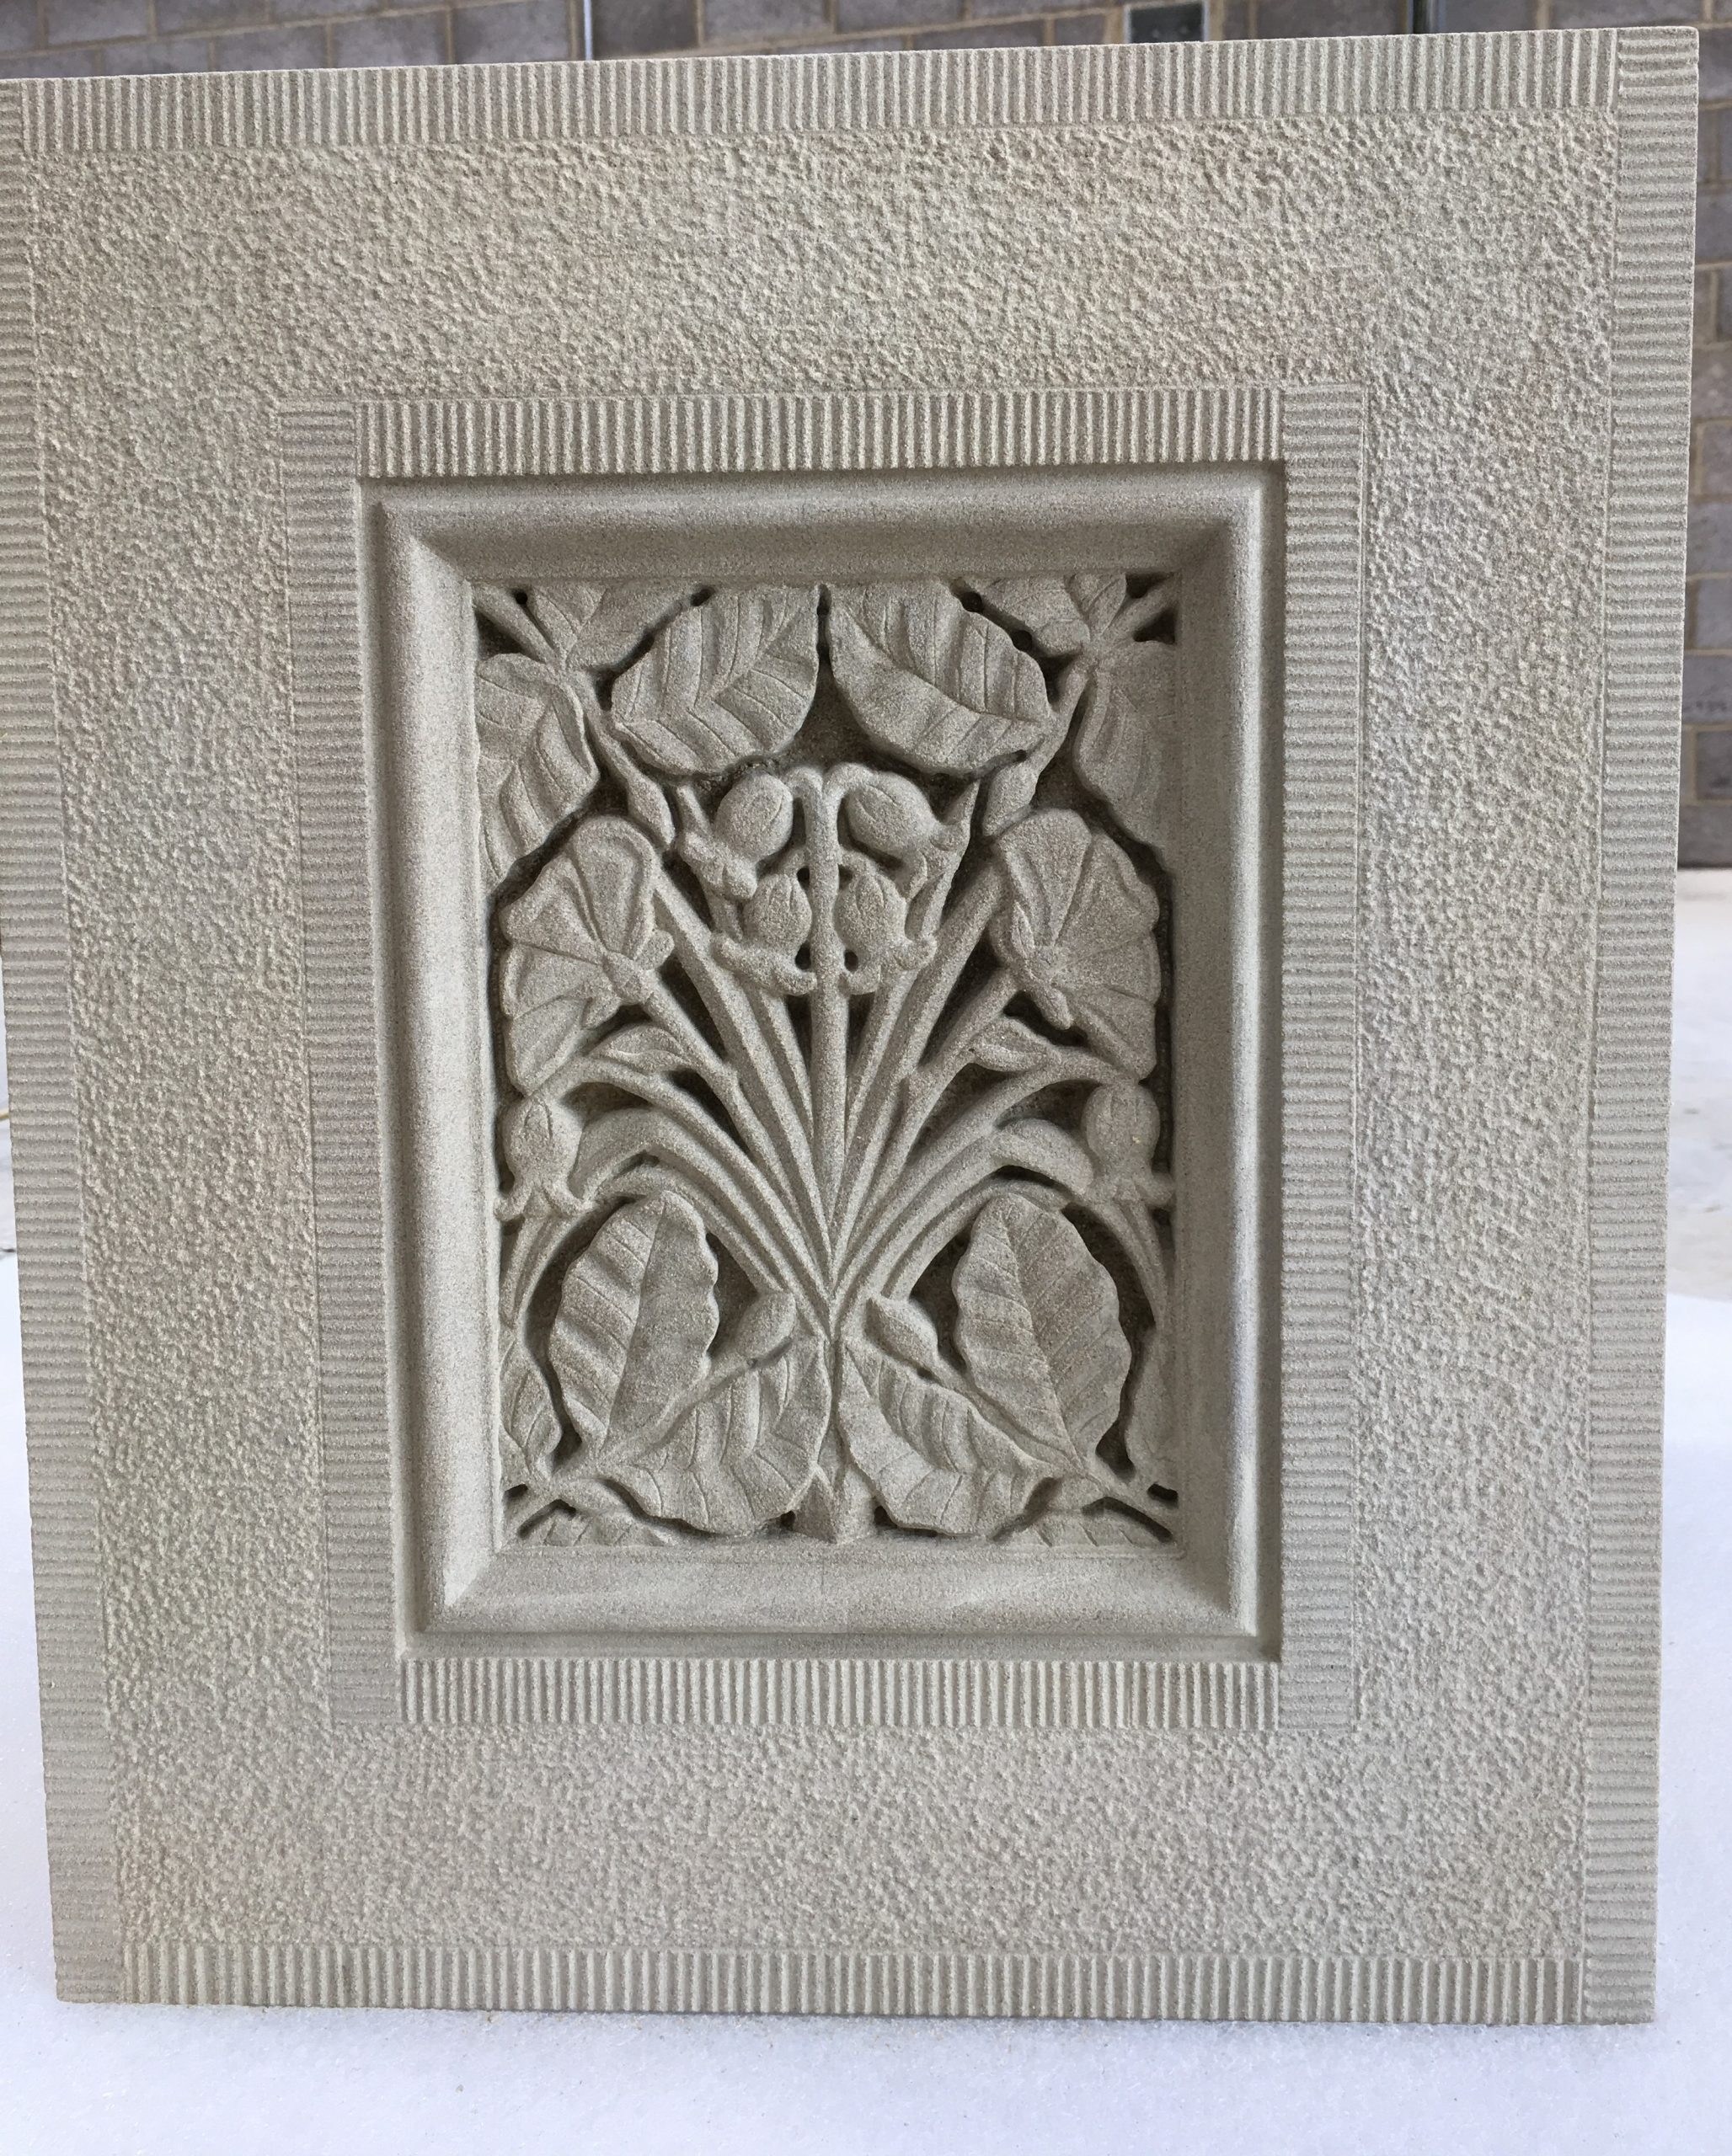 Intricate flowers stone carving